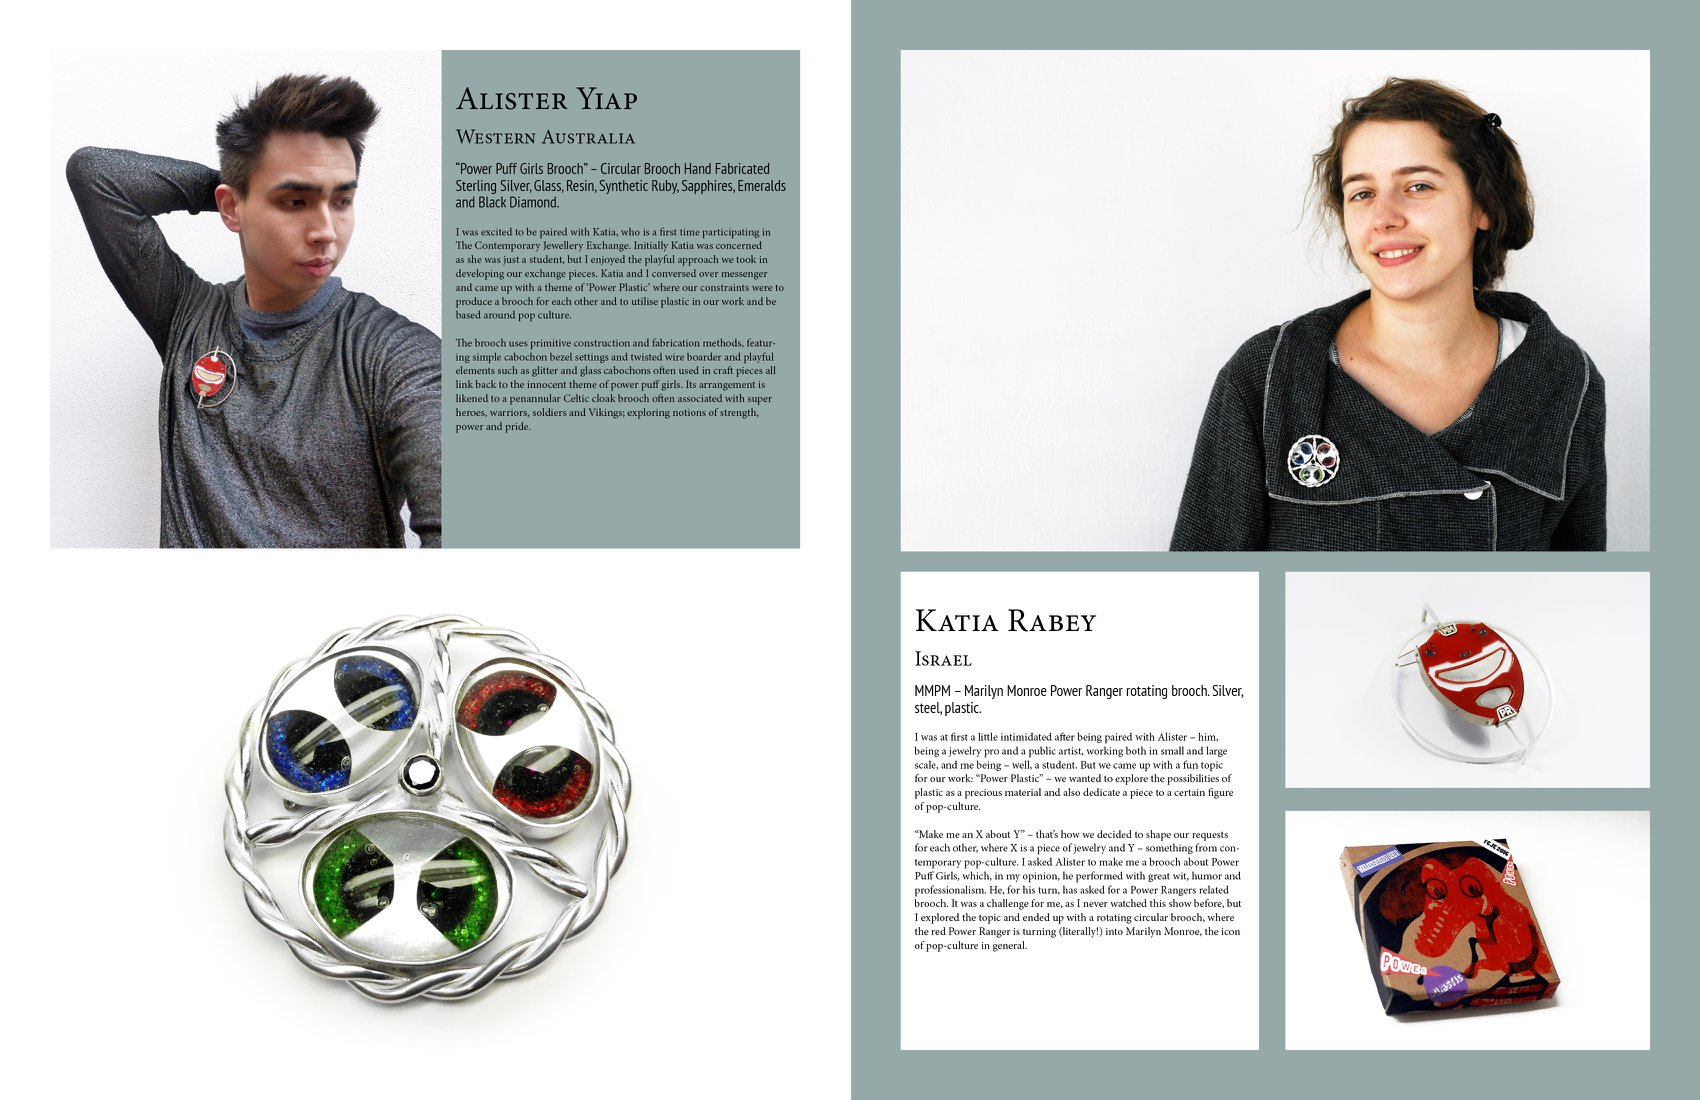 Alister Yiap | Designer Hearing Project